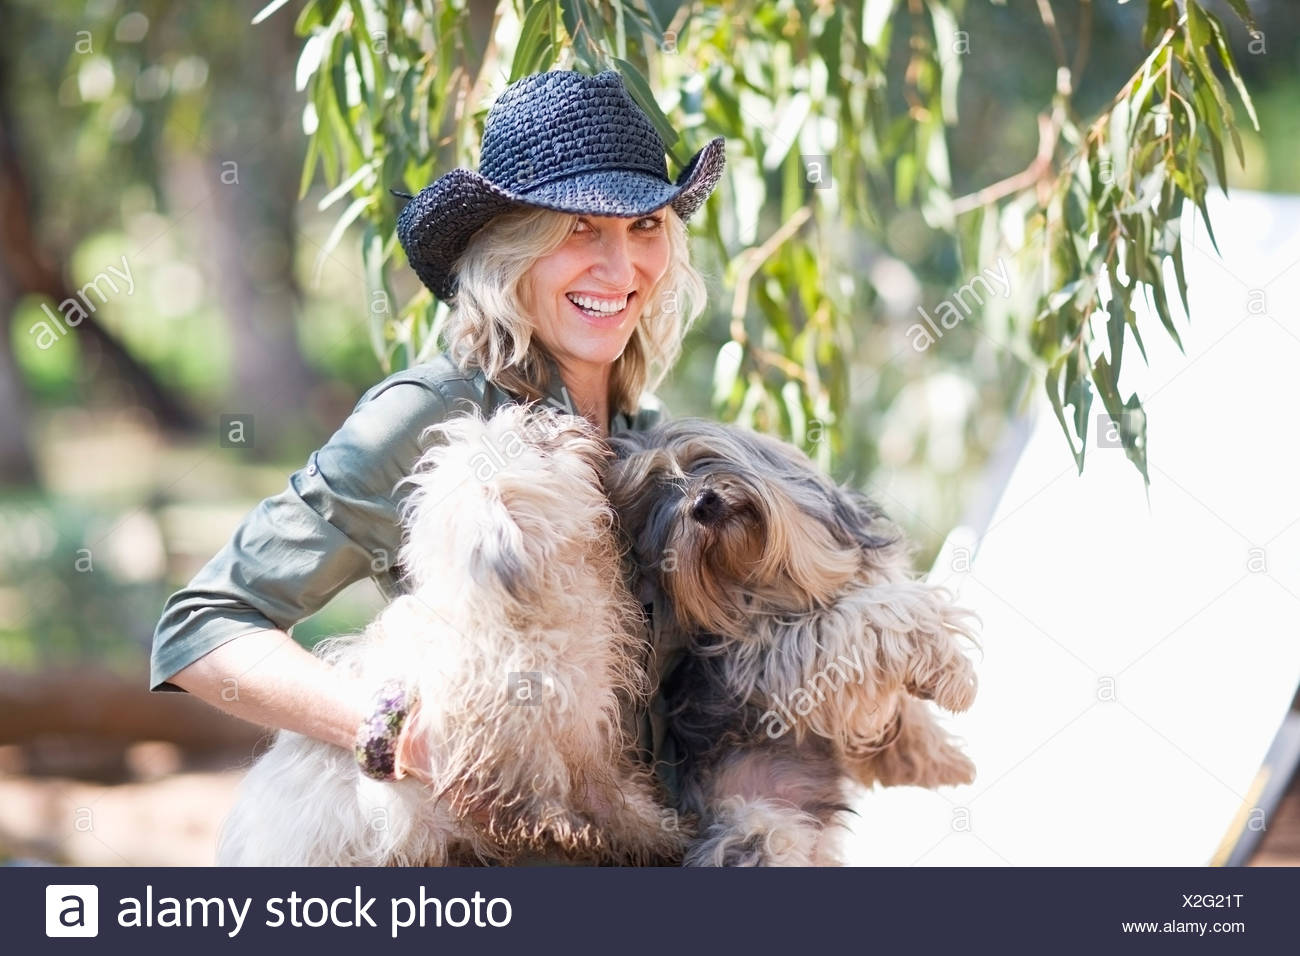 Woman carrying dogs outdoors - Stock Image